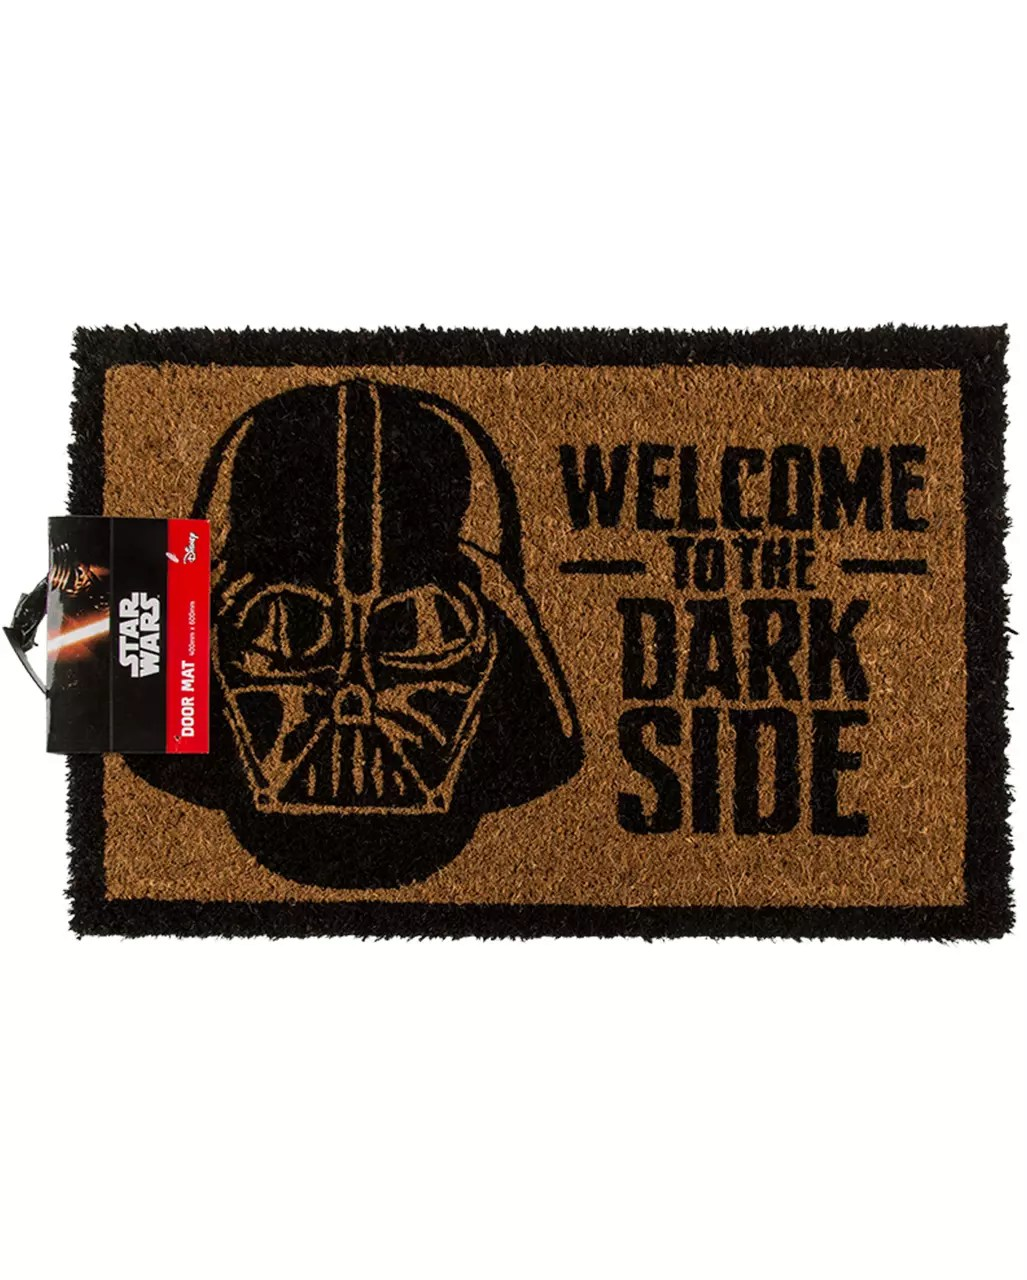 Fussmatte Türkis Star Wars Doormat Darth Vader